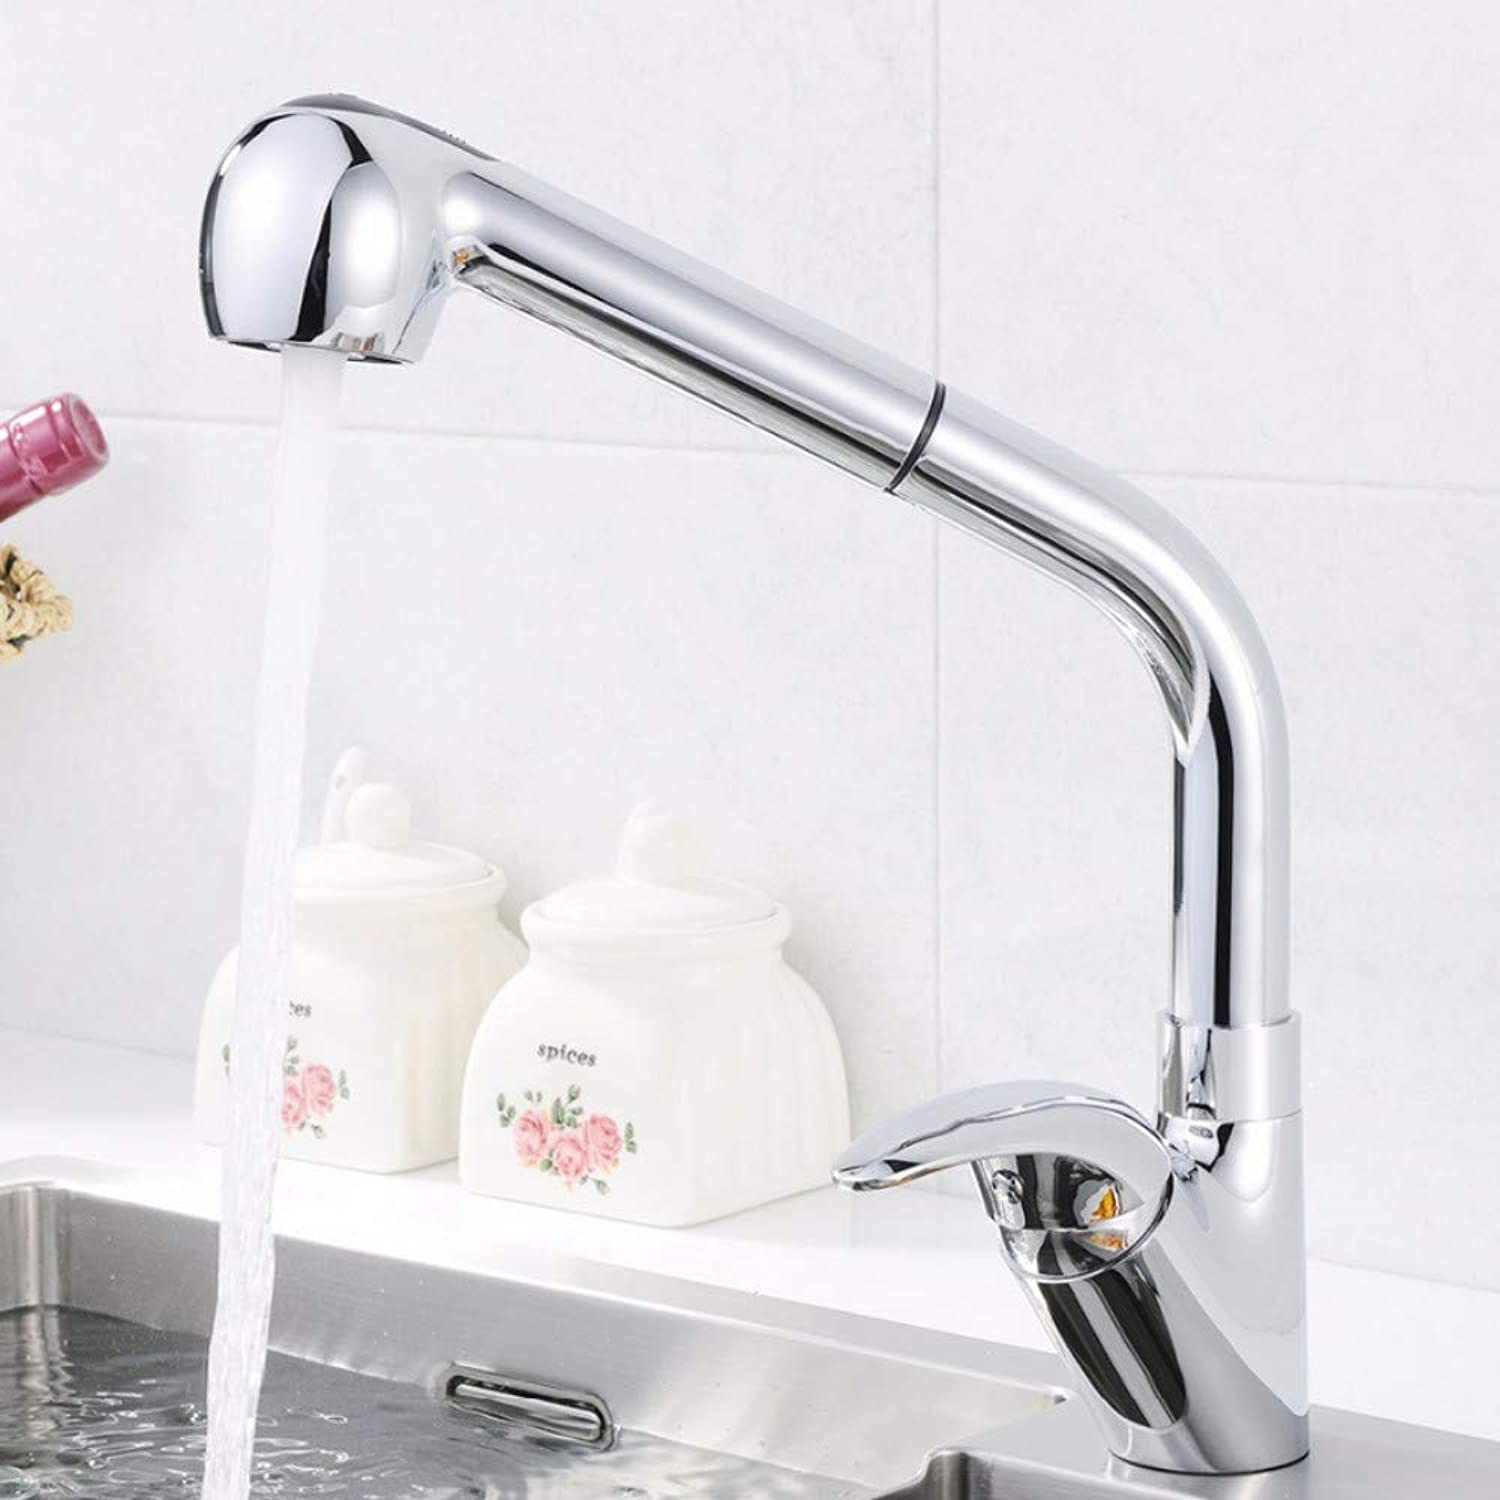 Lddpl Kitchen Faucet Sink Mixer Tap Chrome Finish 2-Function Water Outlet Single Handle Pull Out Kitchen Tap